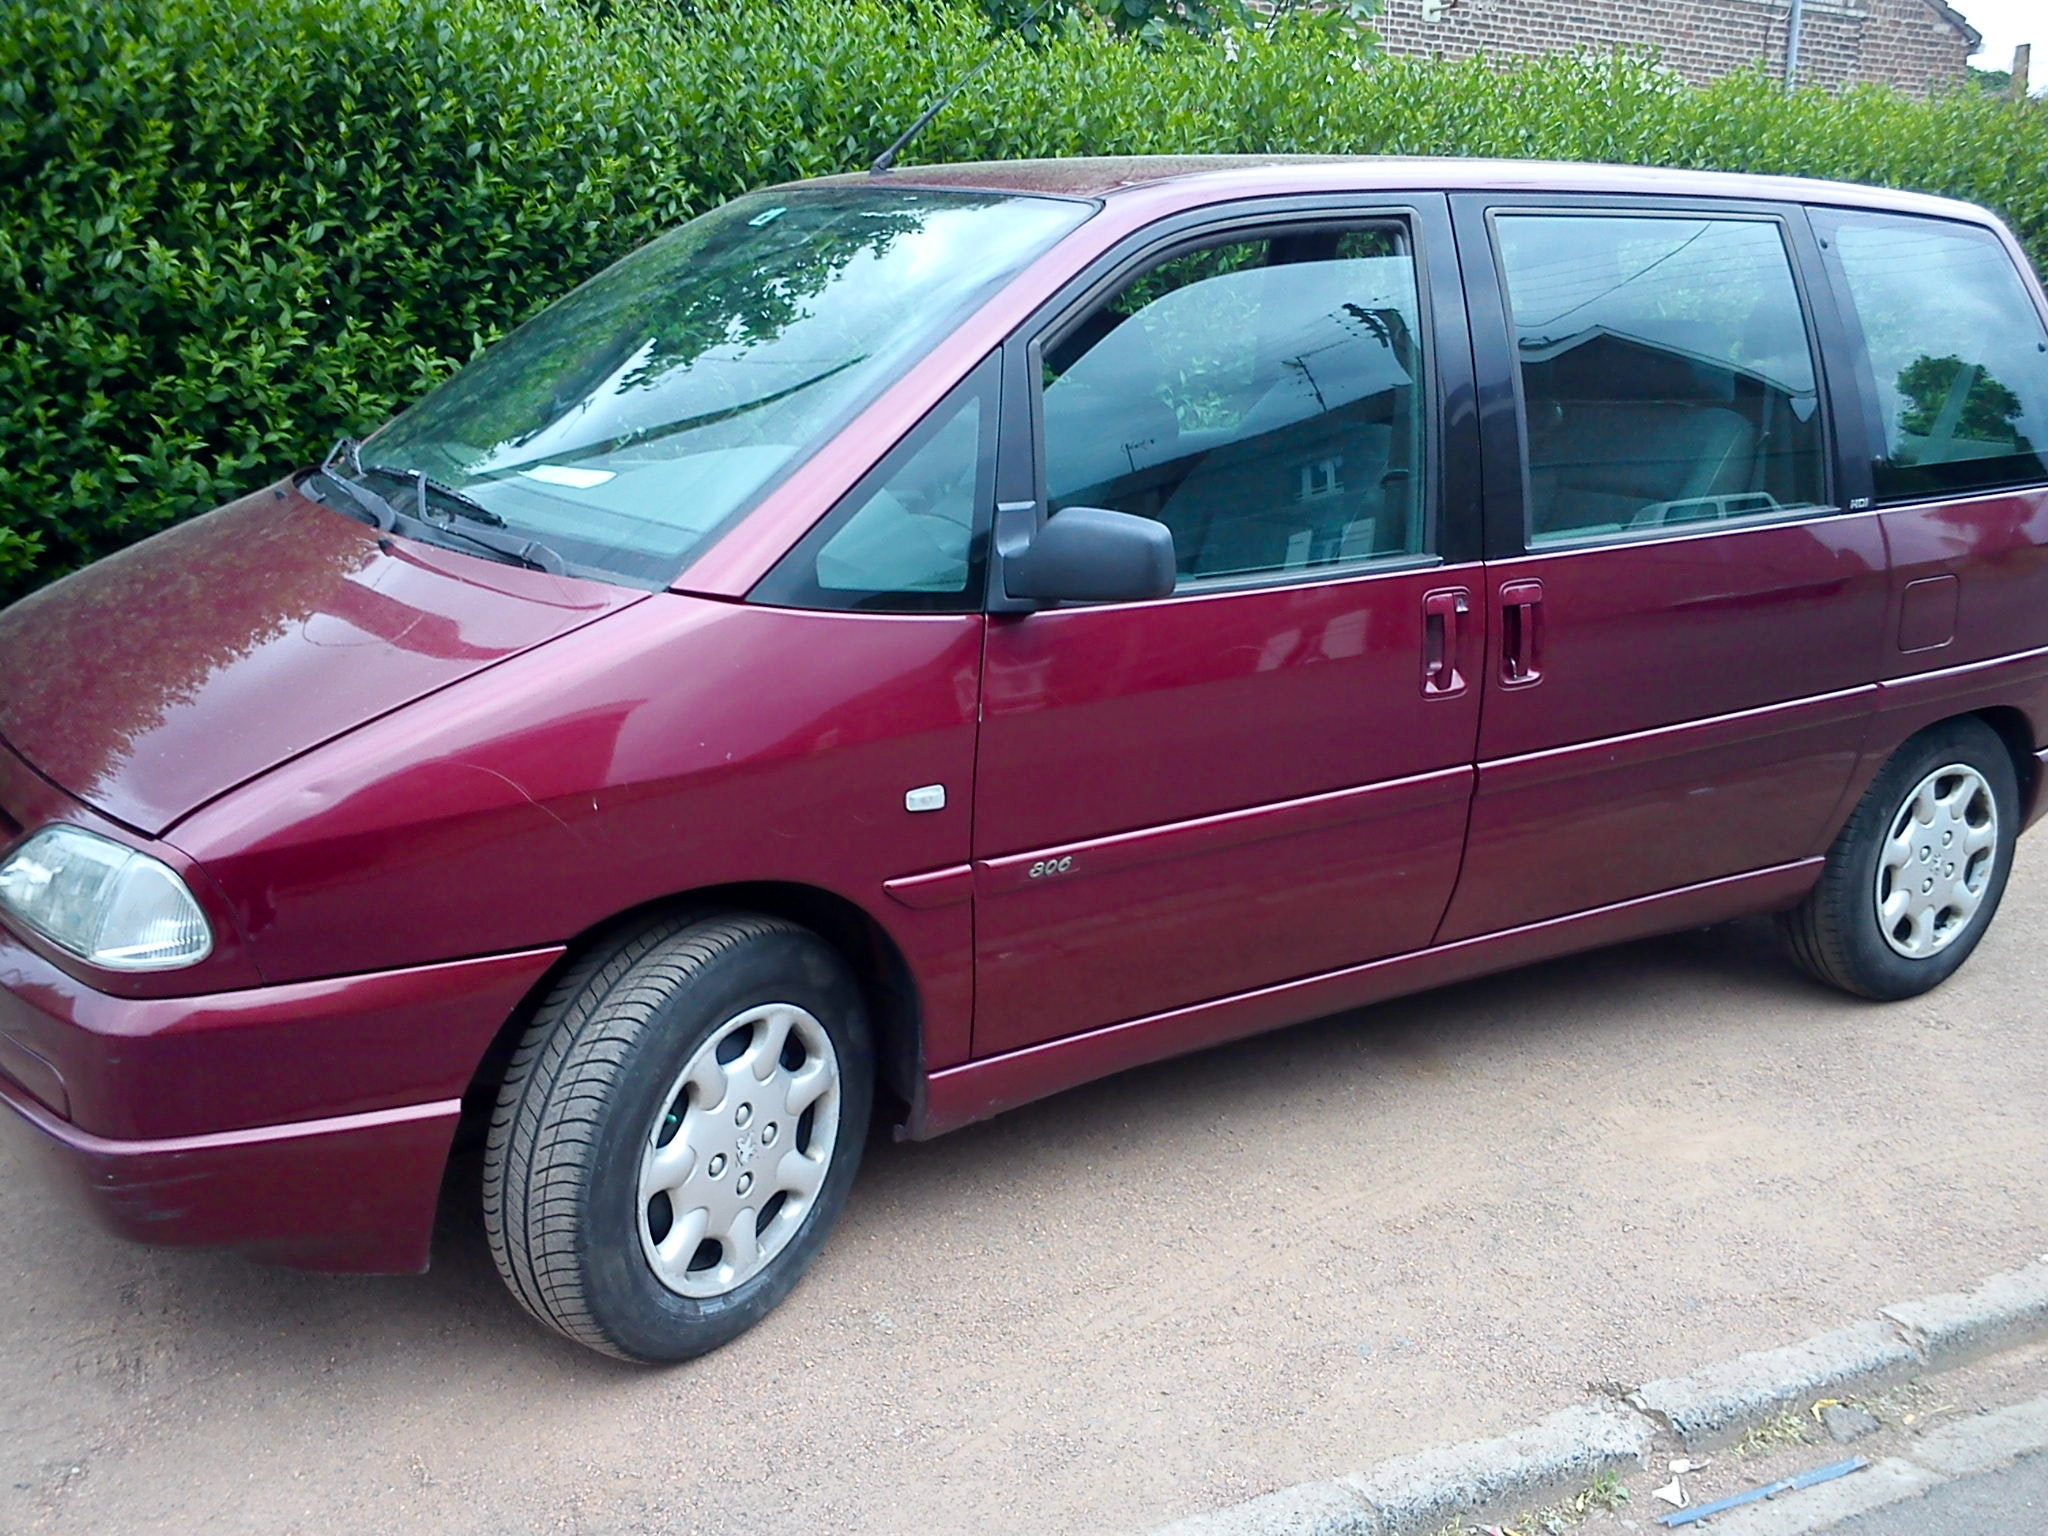 Peugeot 806 hdi 7 places portes coulissantes, 1999, Diesel, 7 places